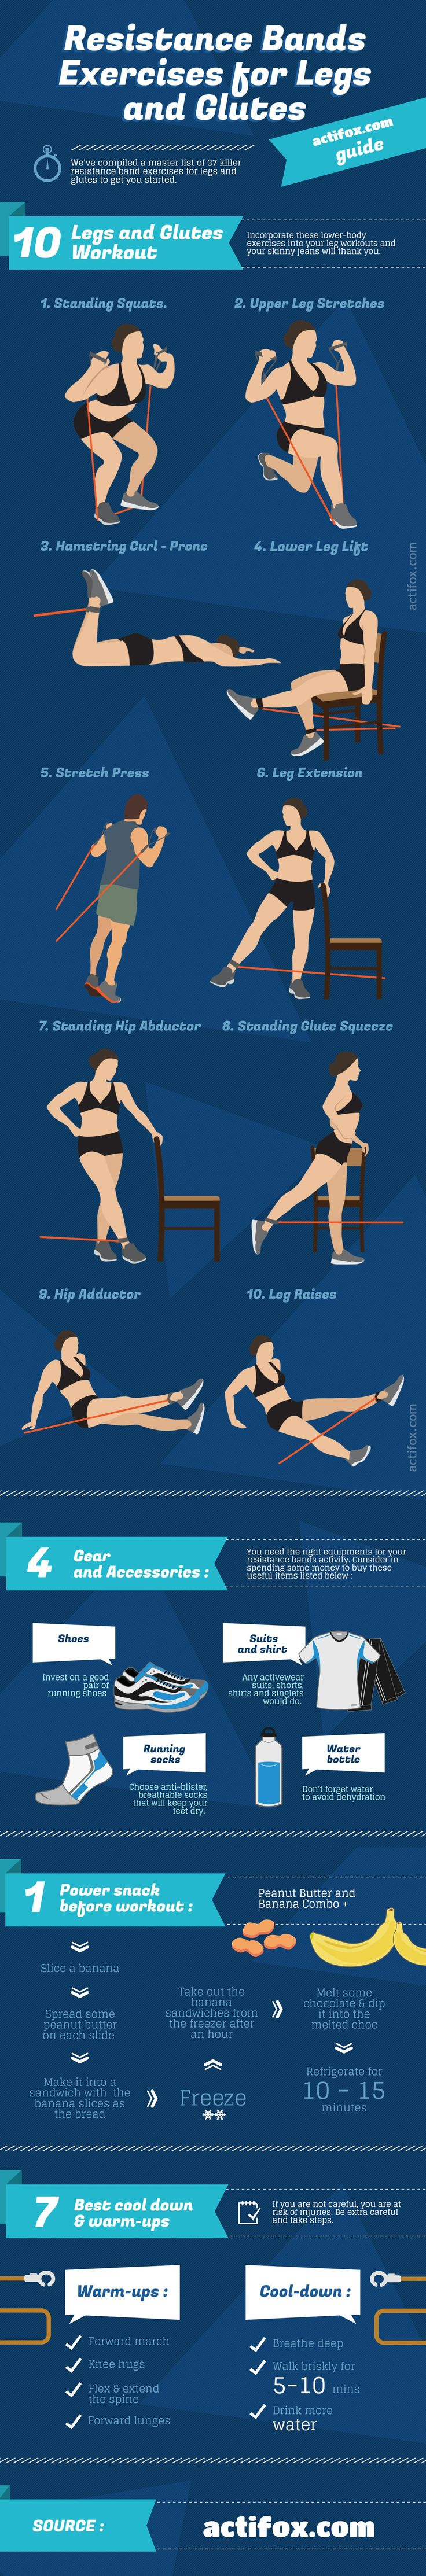 The 18 Best Resistance Band Exercises for Legs and Glutes (fitness Resistance Bands Legs Exercises)